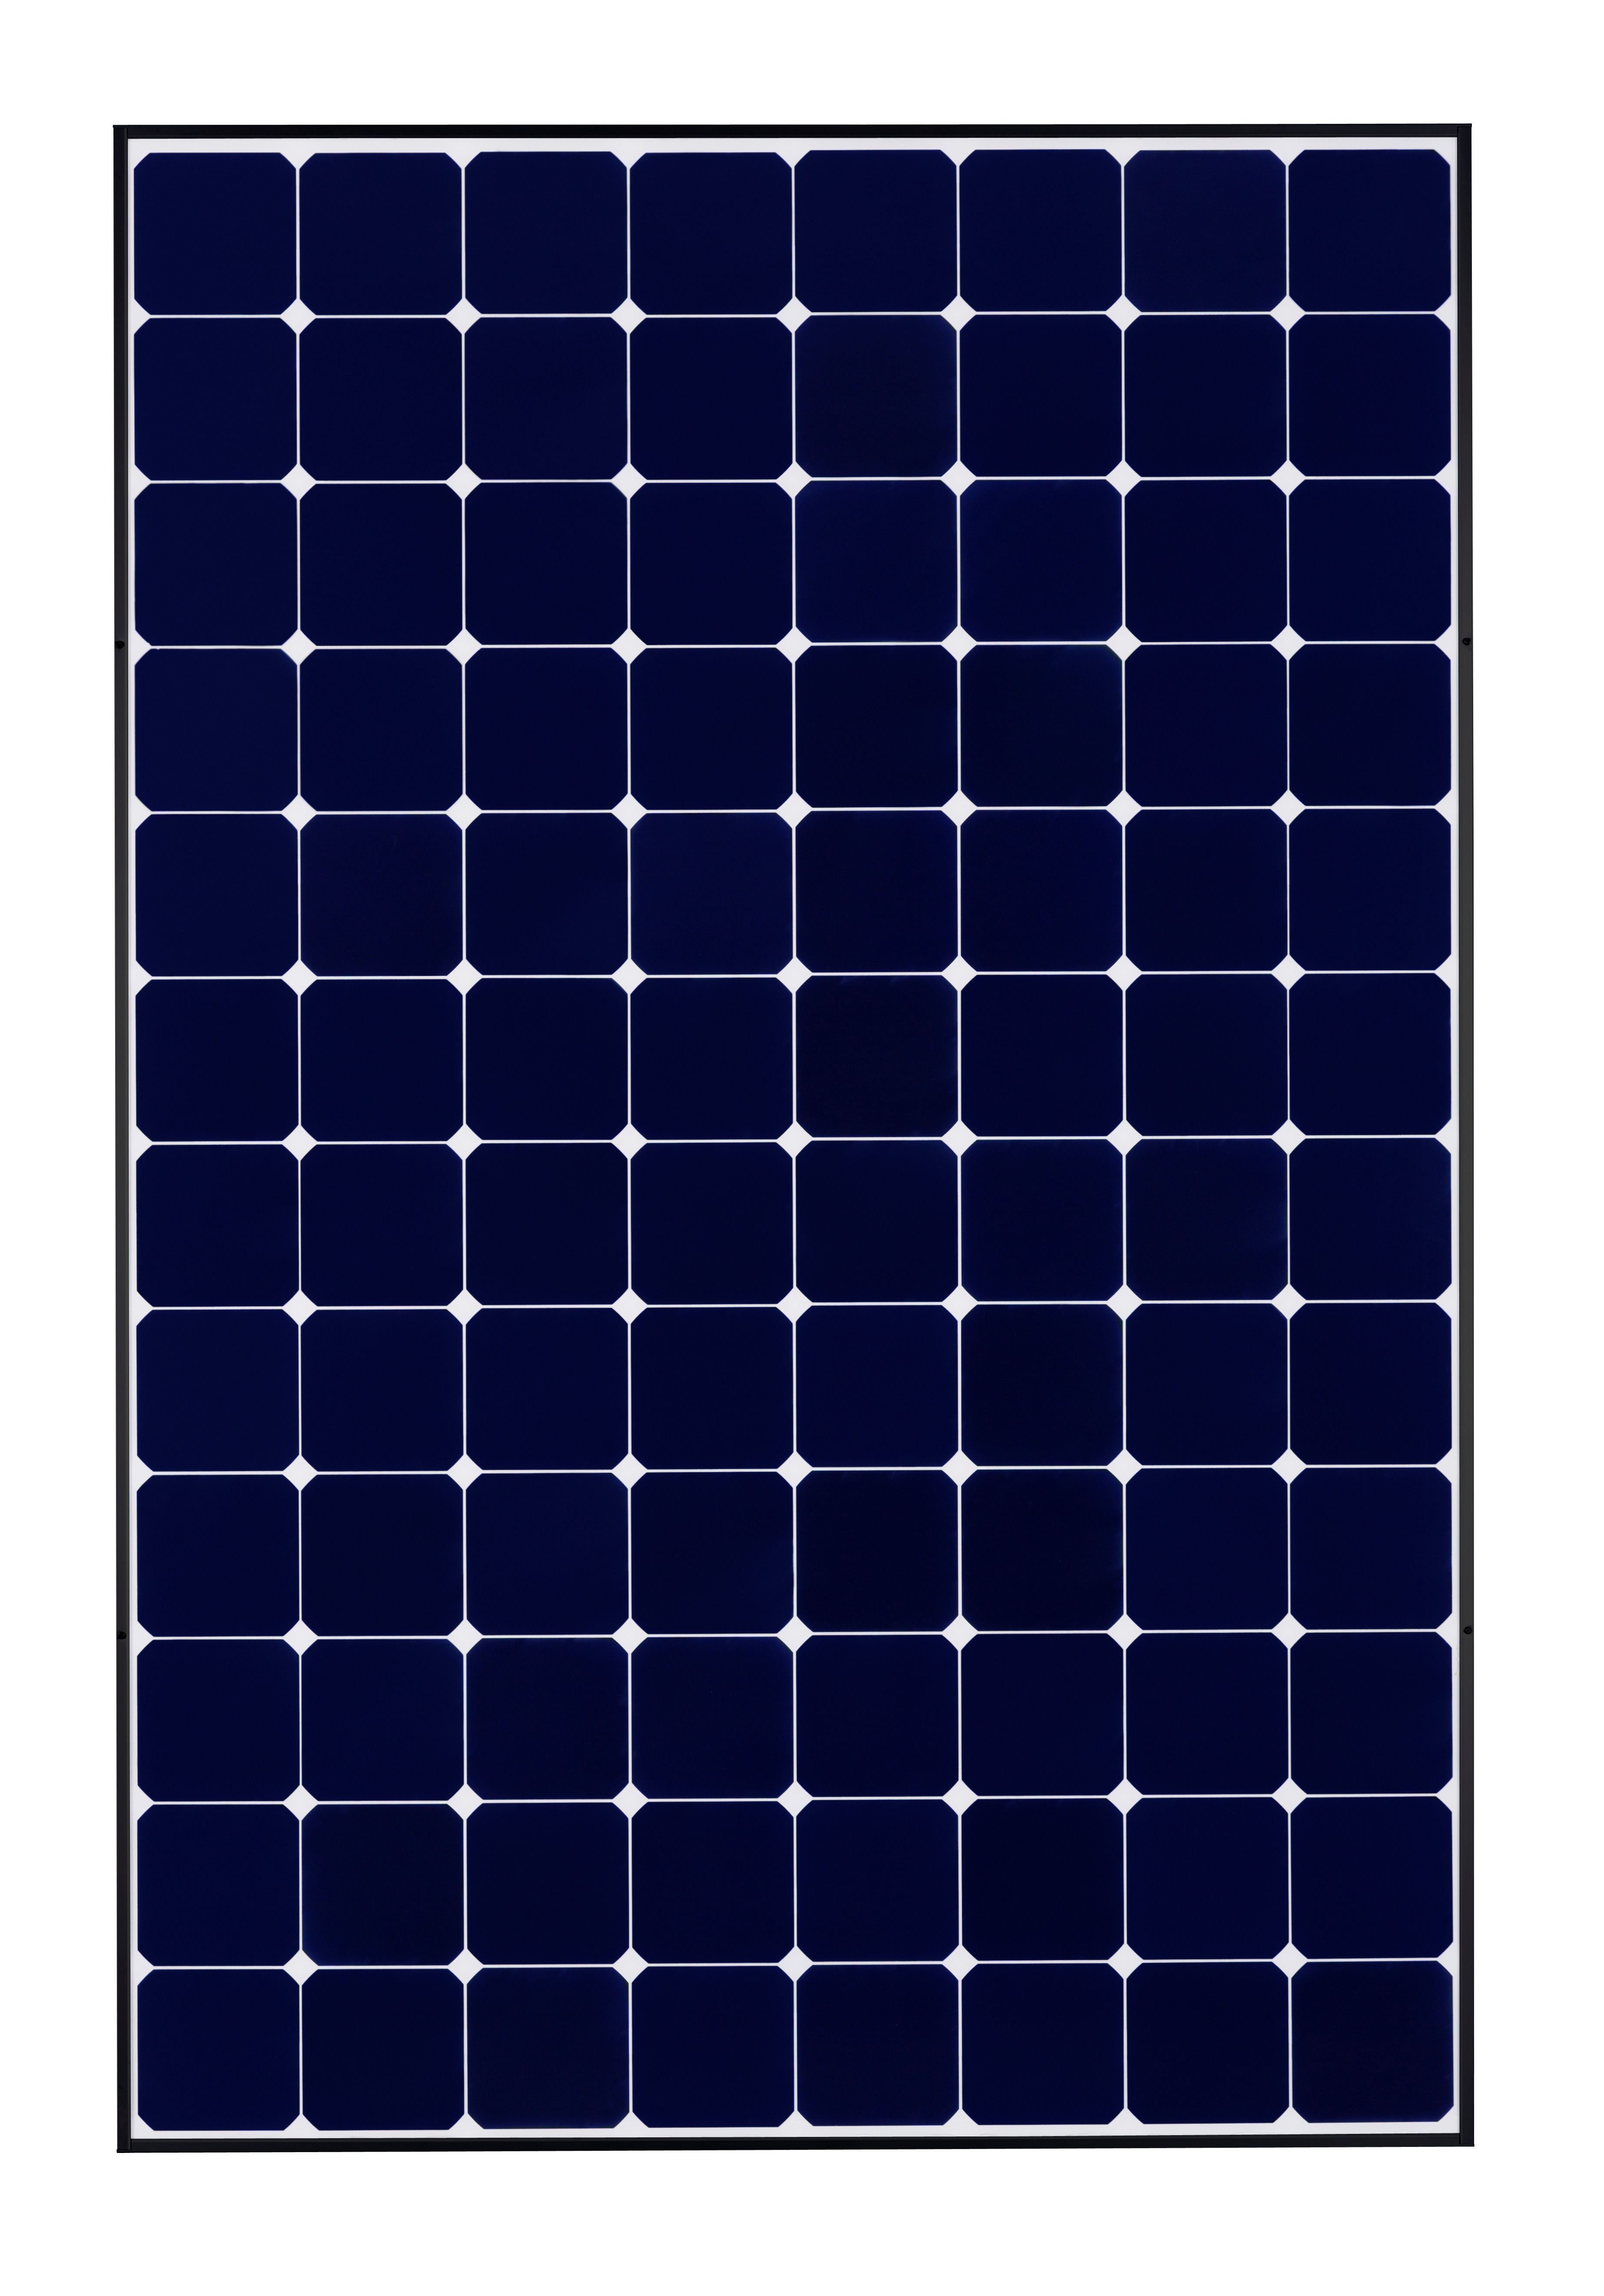 Sunpower Images